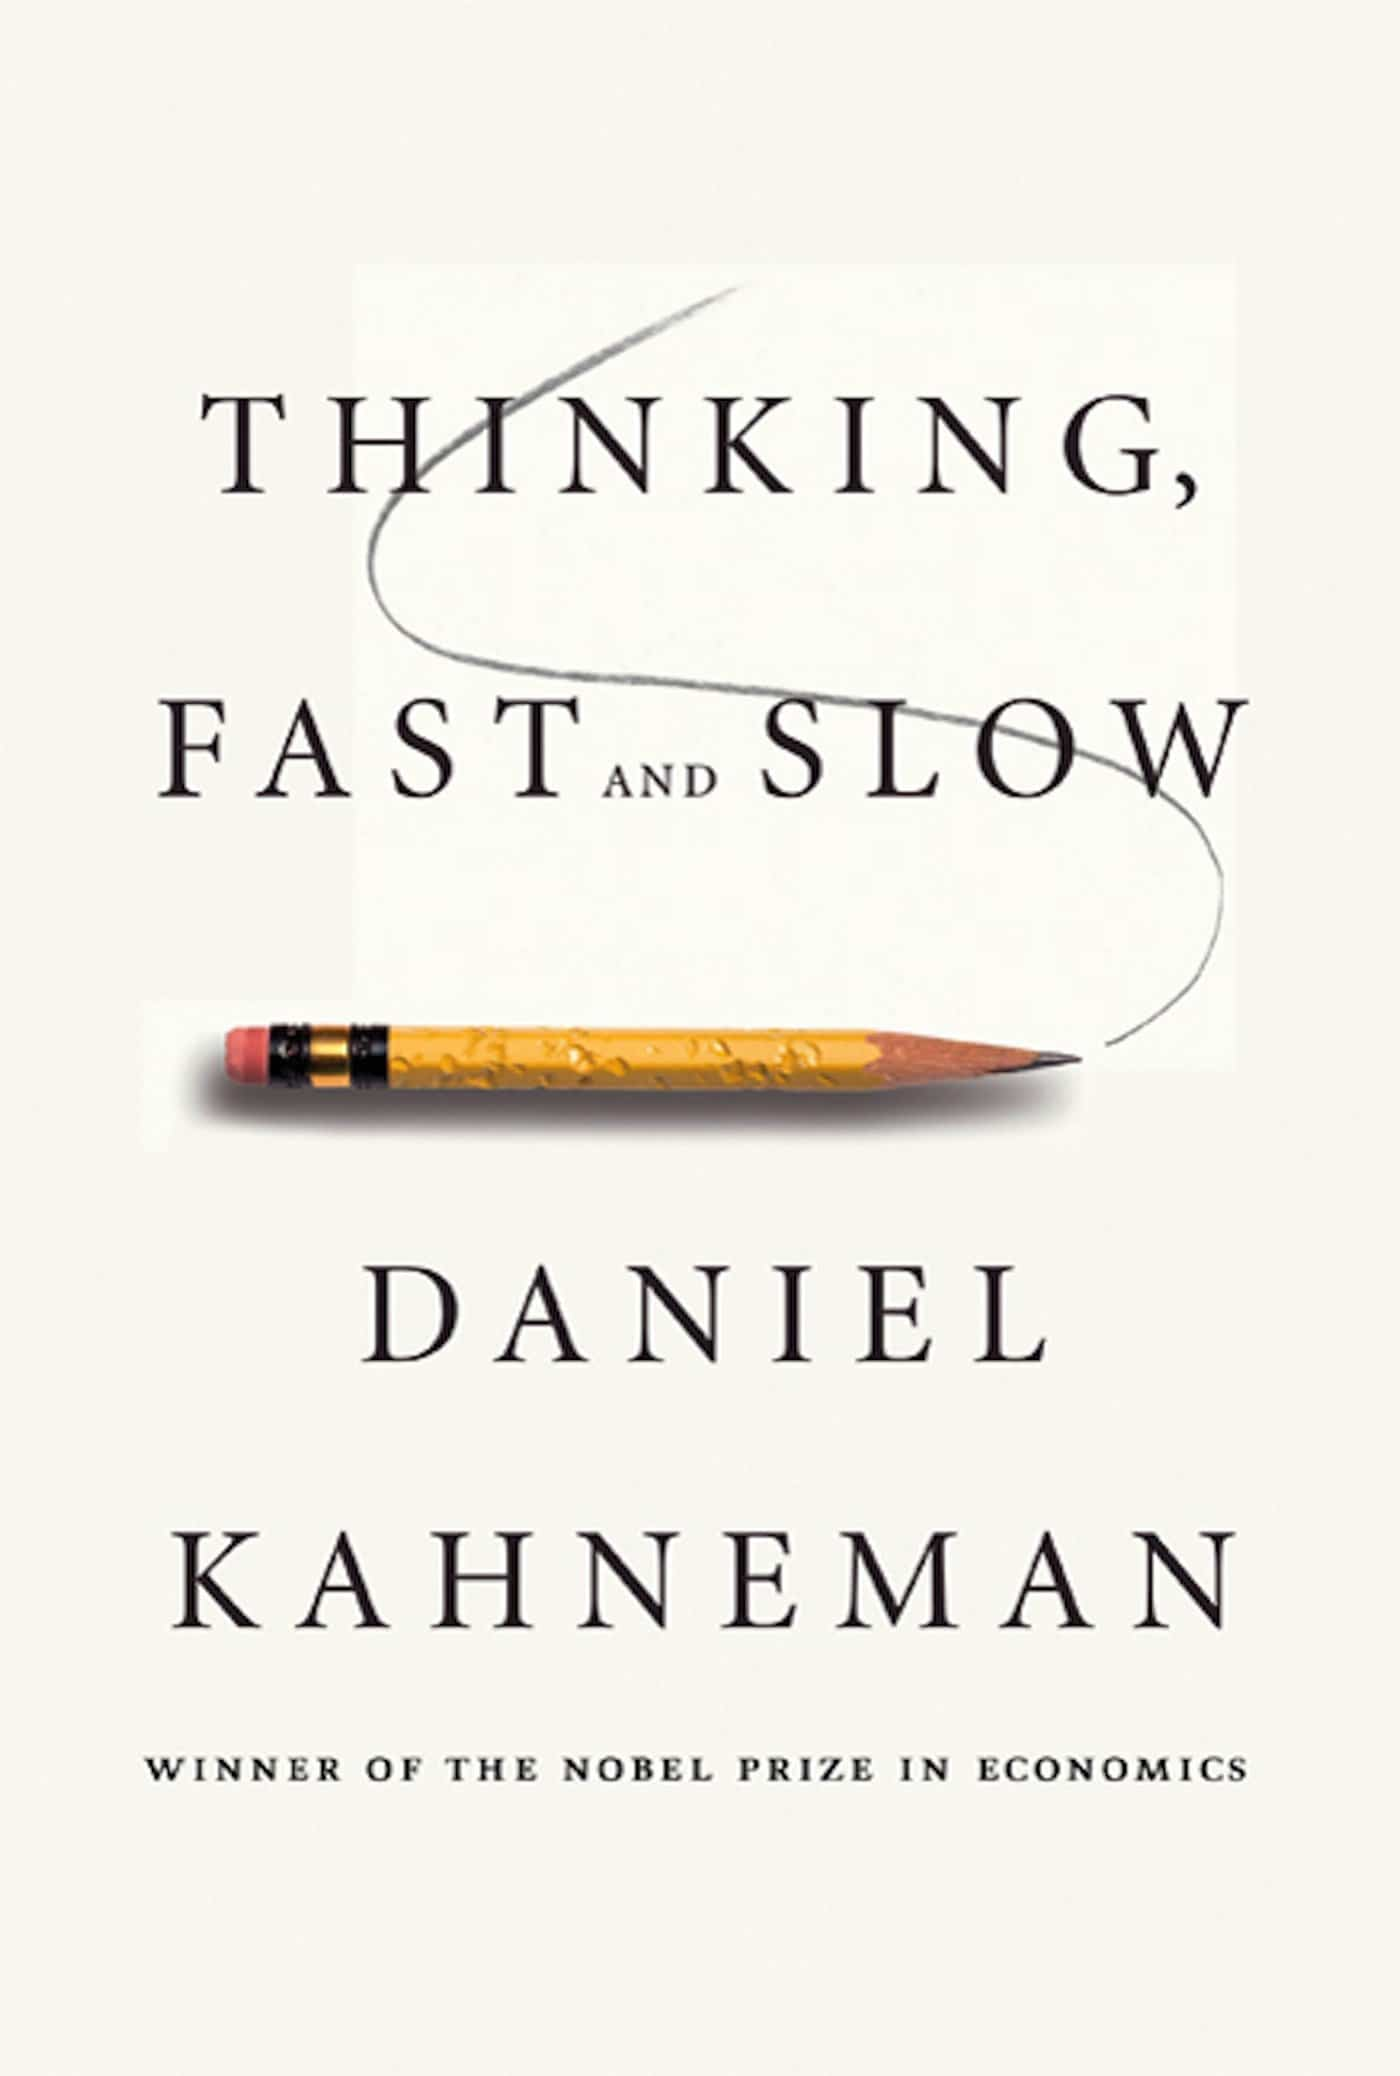 The cover of Thinking, Fast and Slow